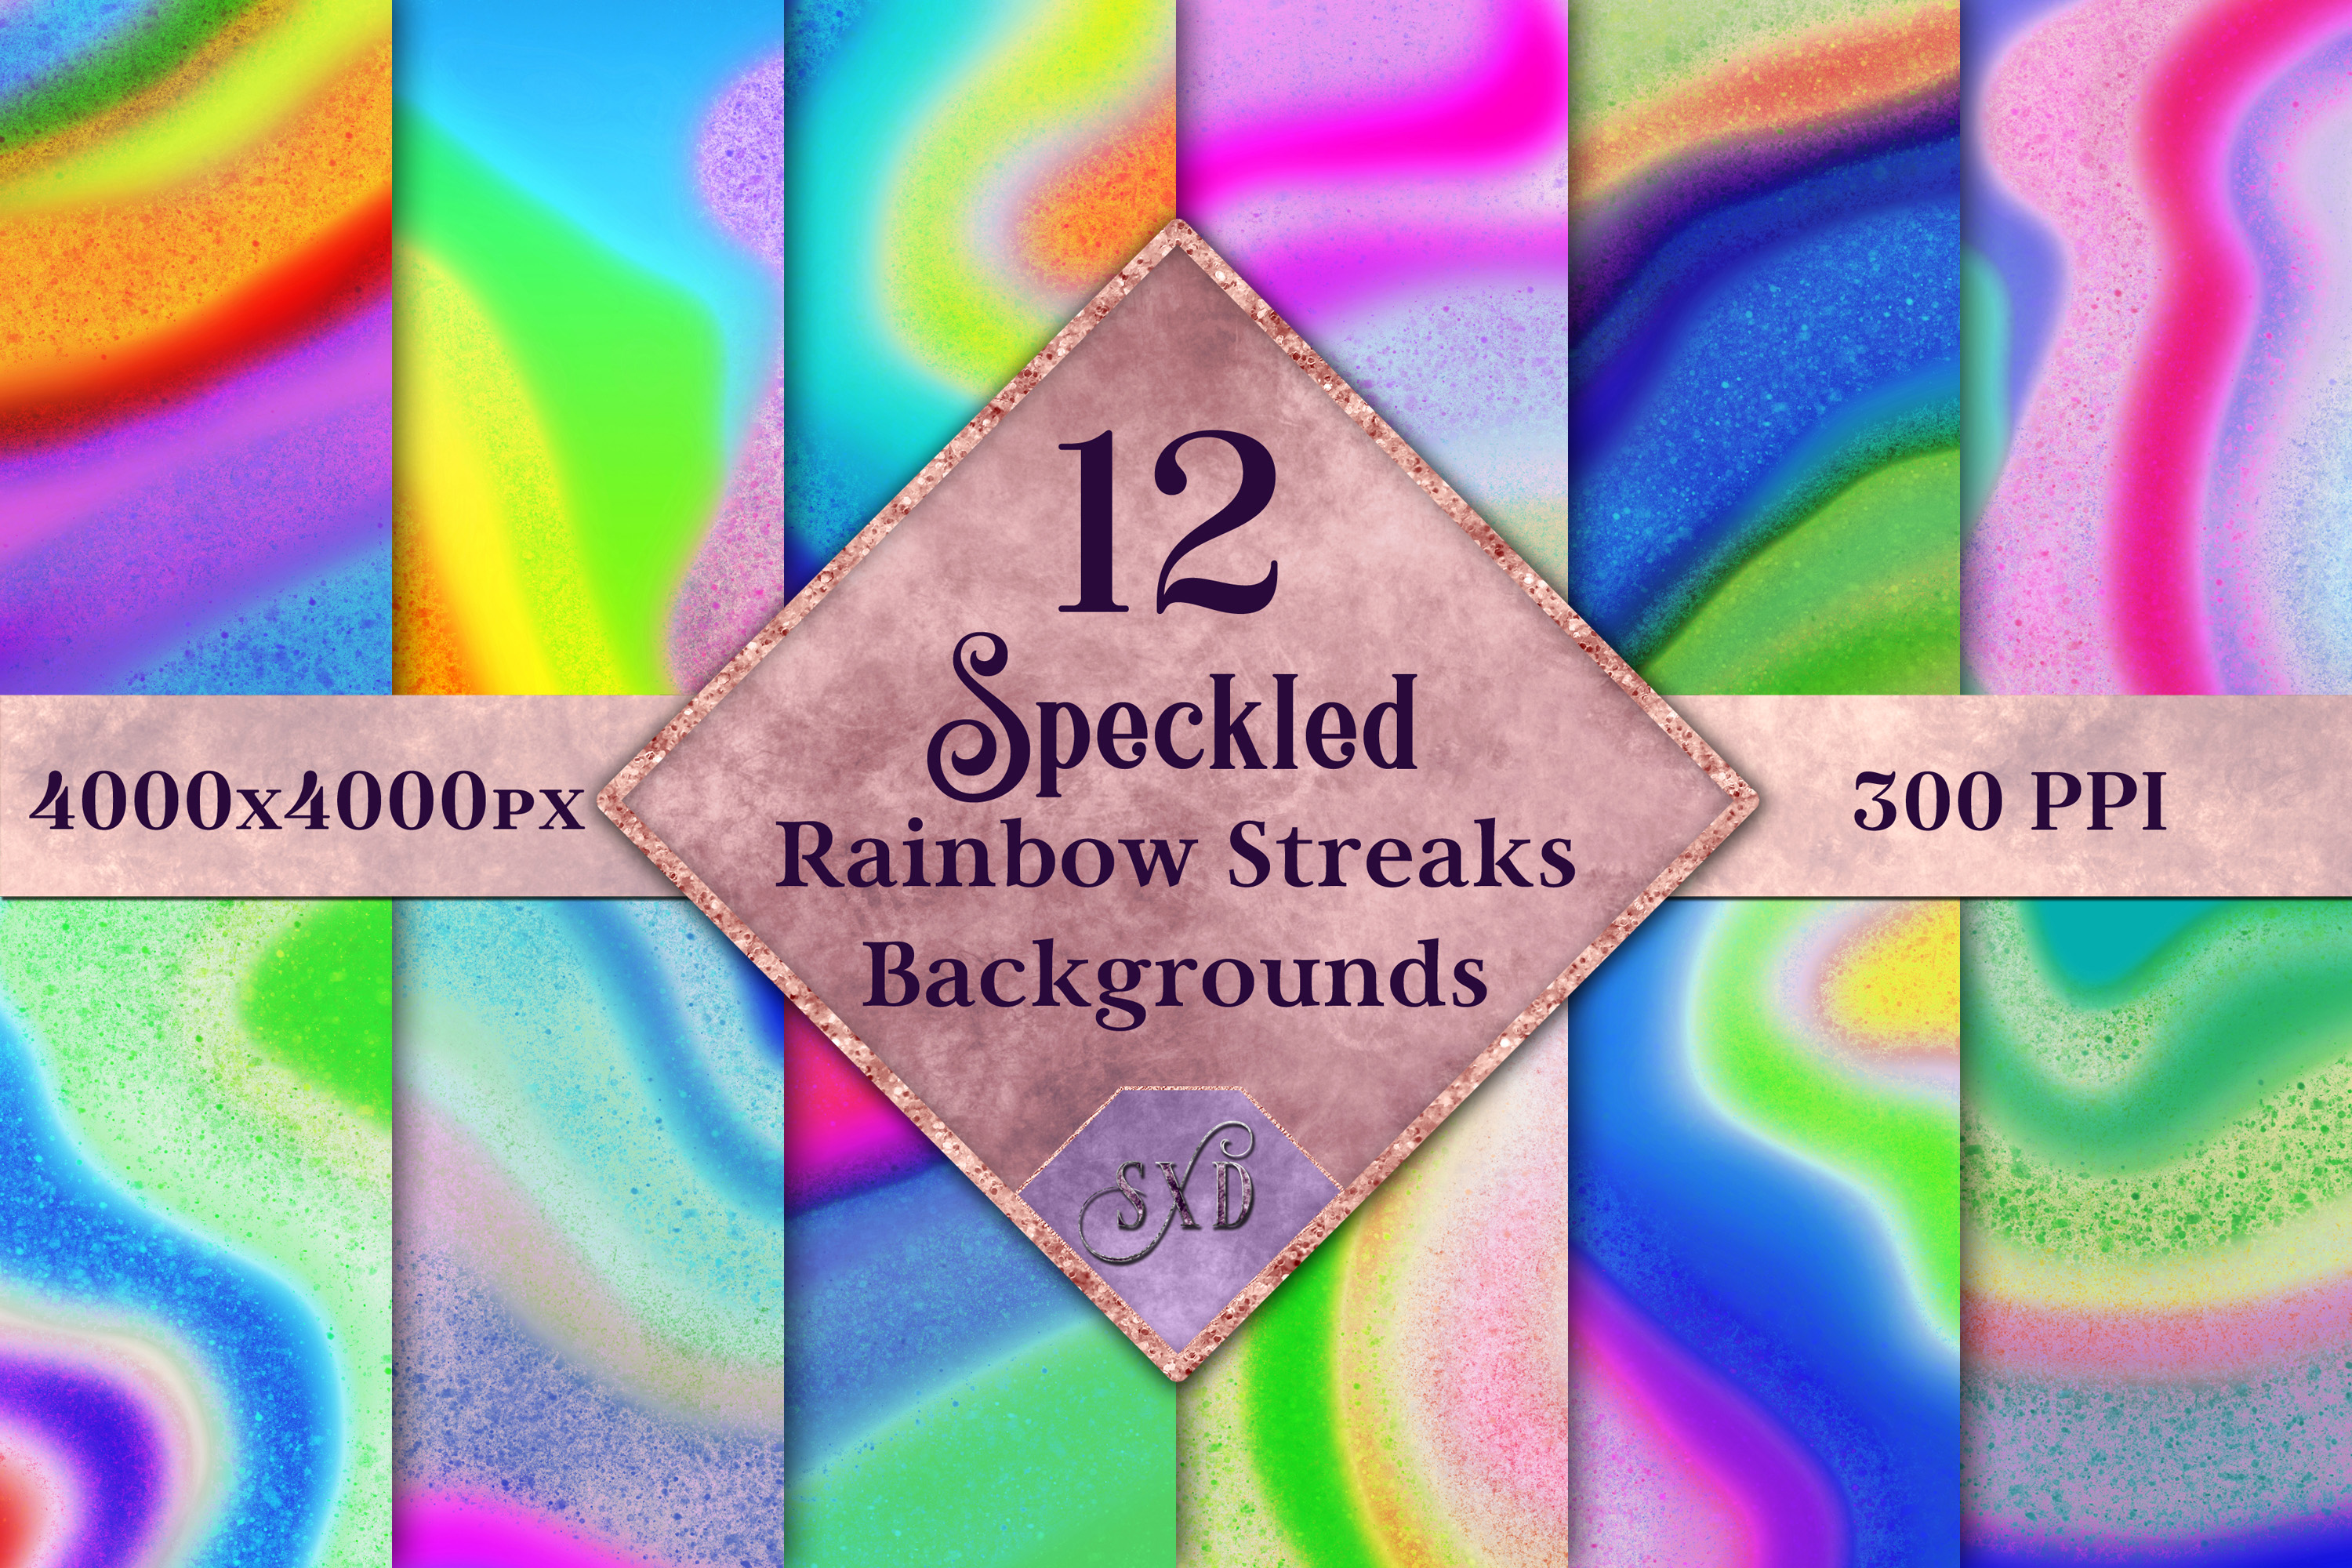 Speckled Rainbow Streaks Backgrounds - 12 Image Textures example image 1